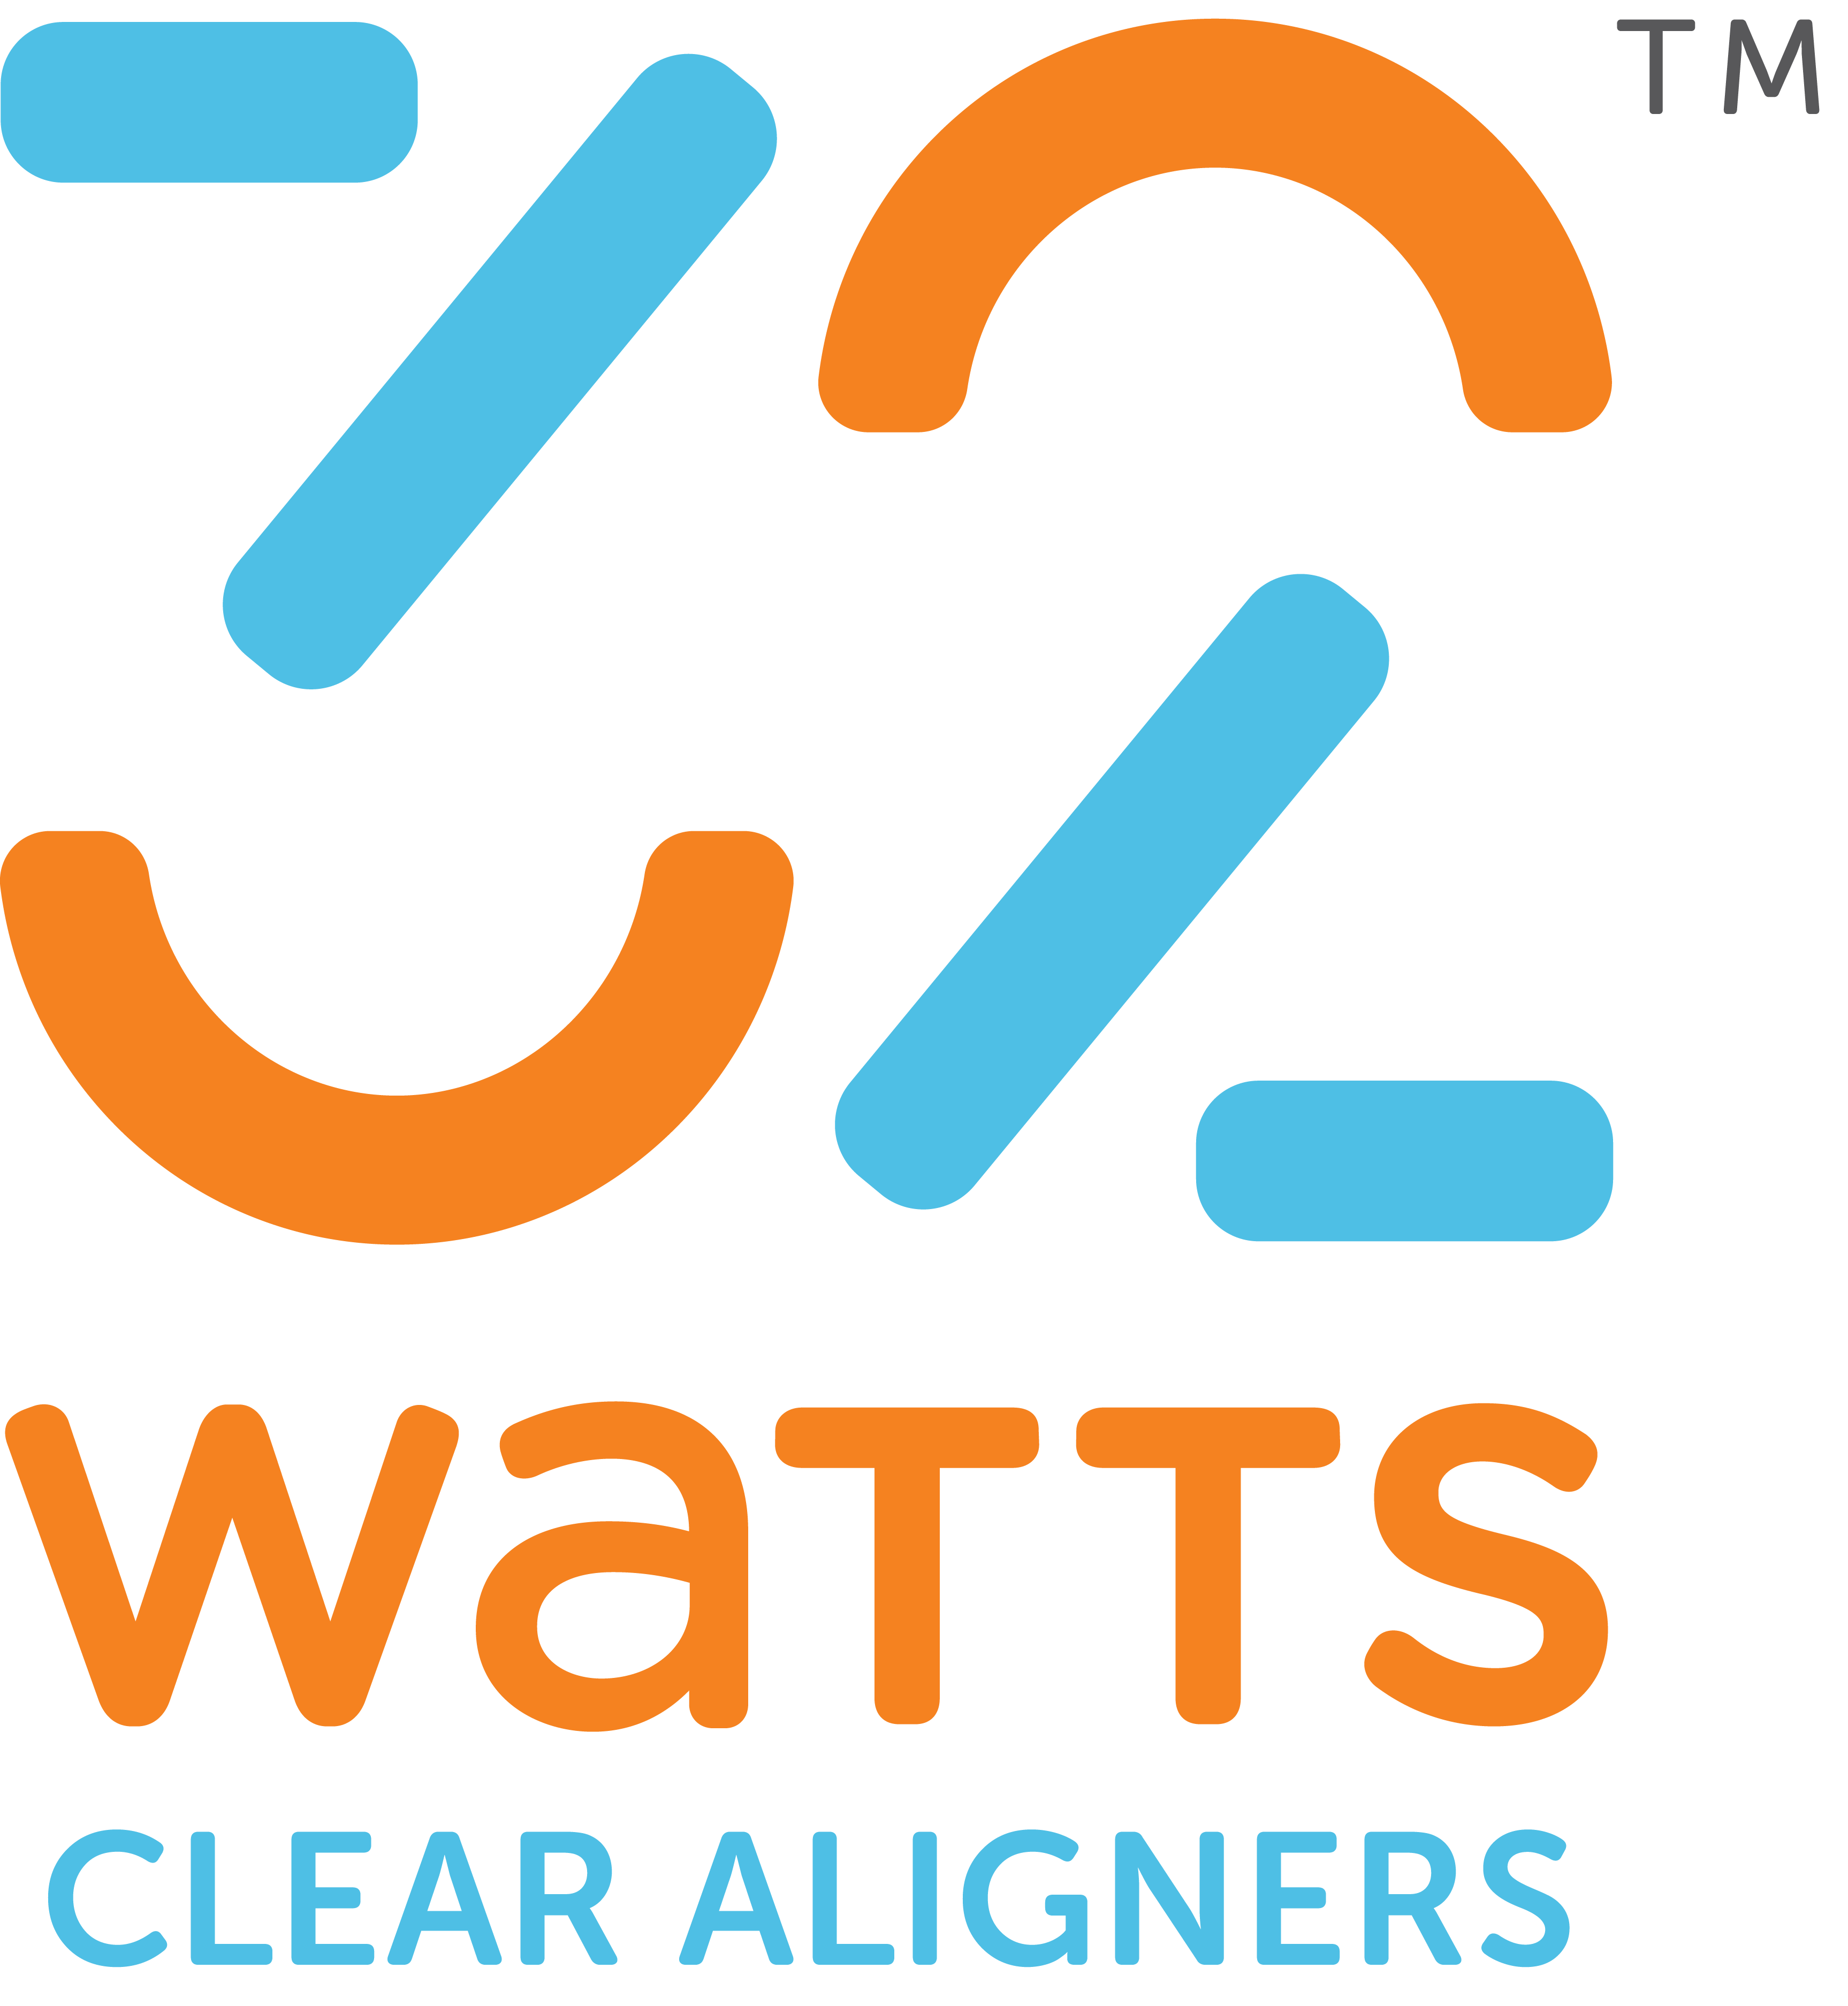 32 Watts Clear Aligners